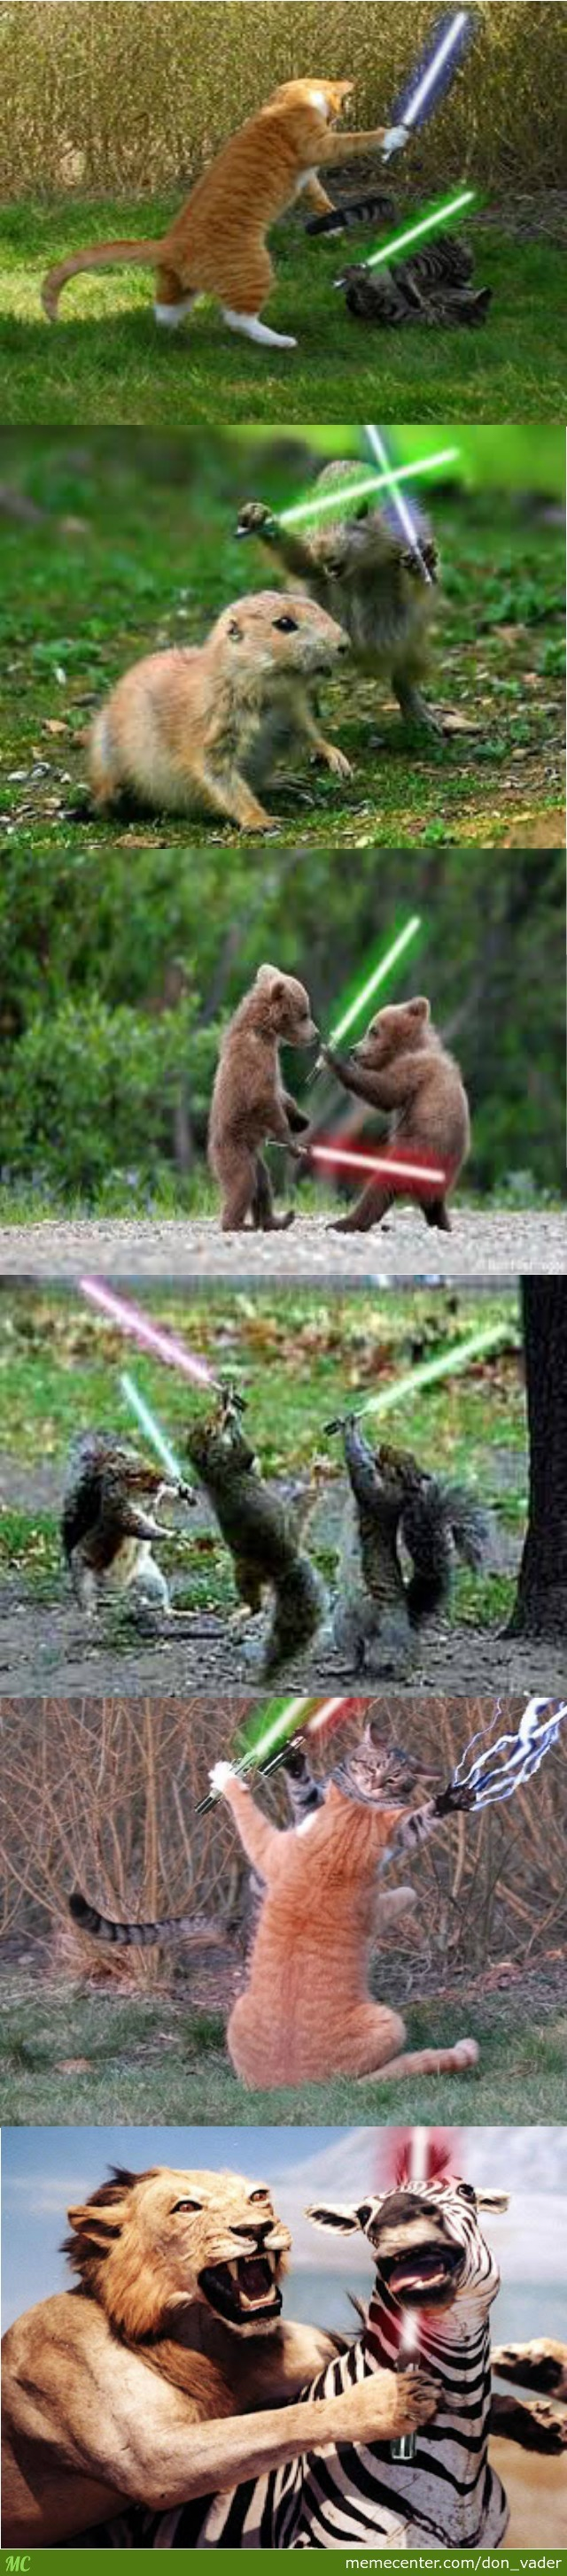 Animals With Lightsabers, What More Do You Want?